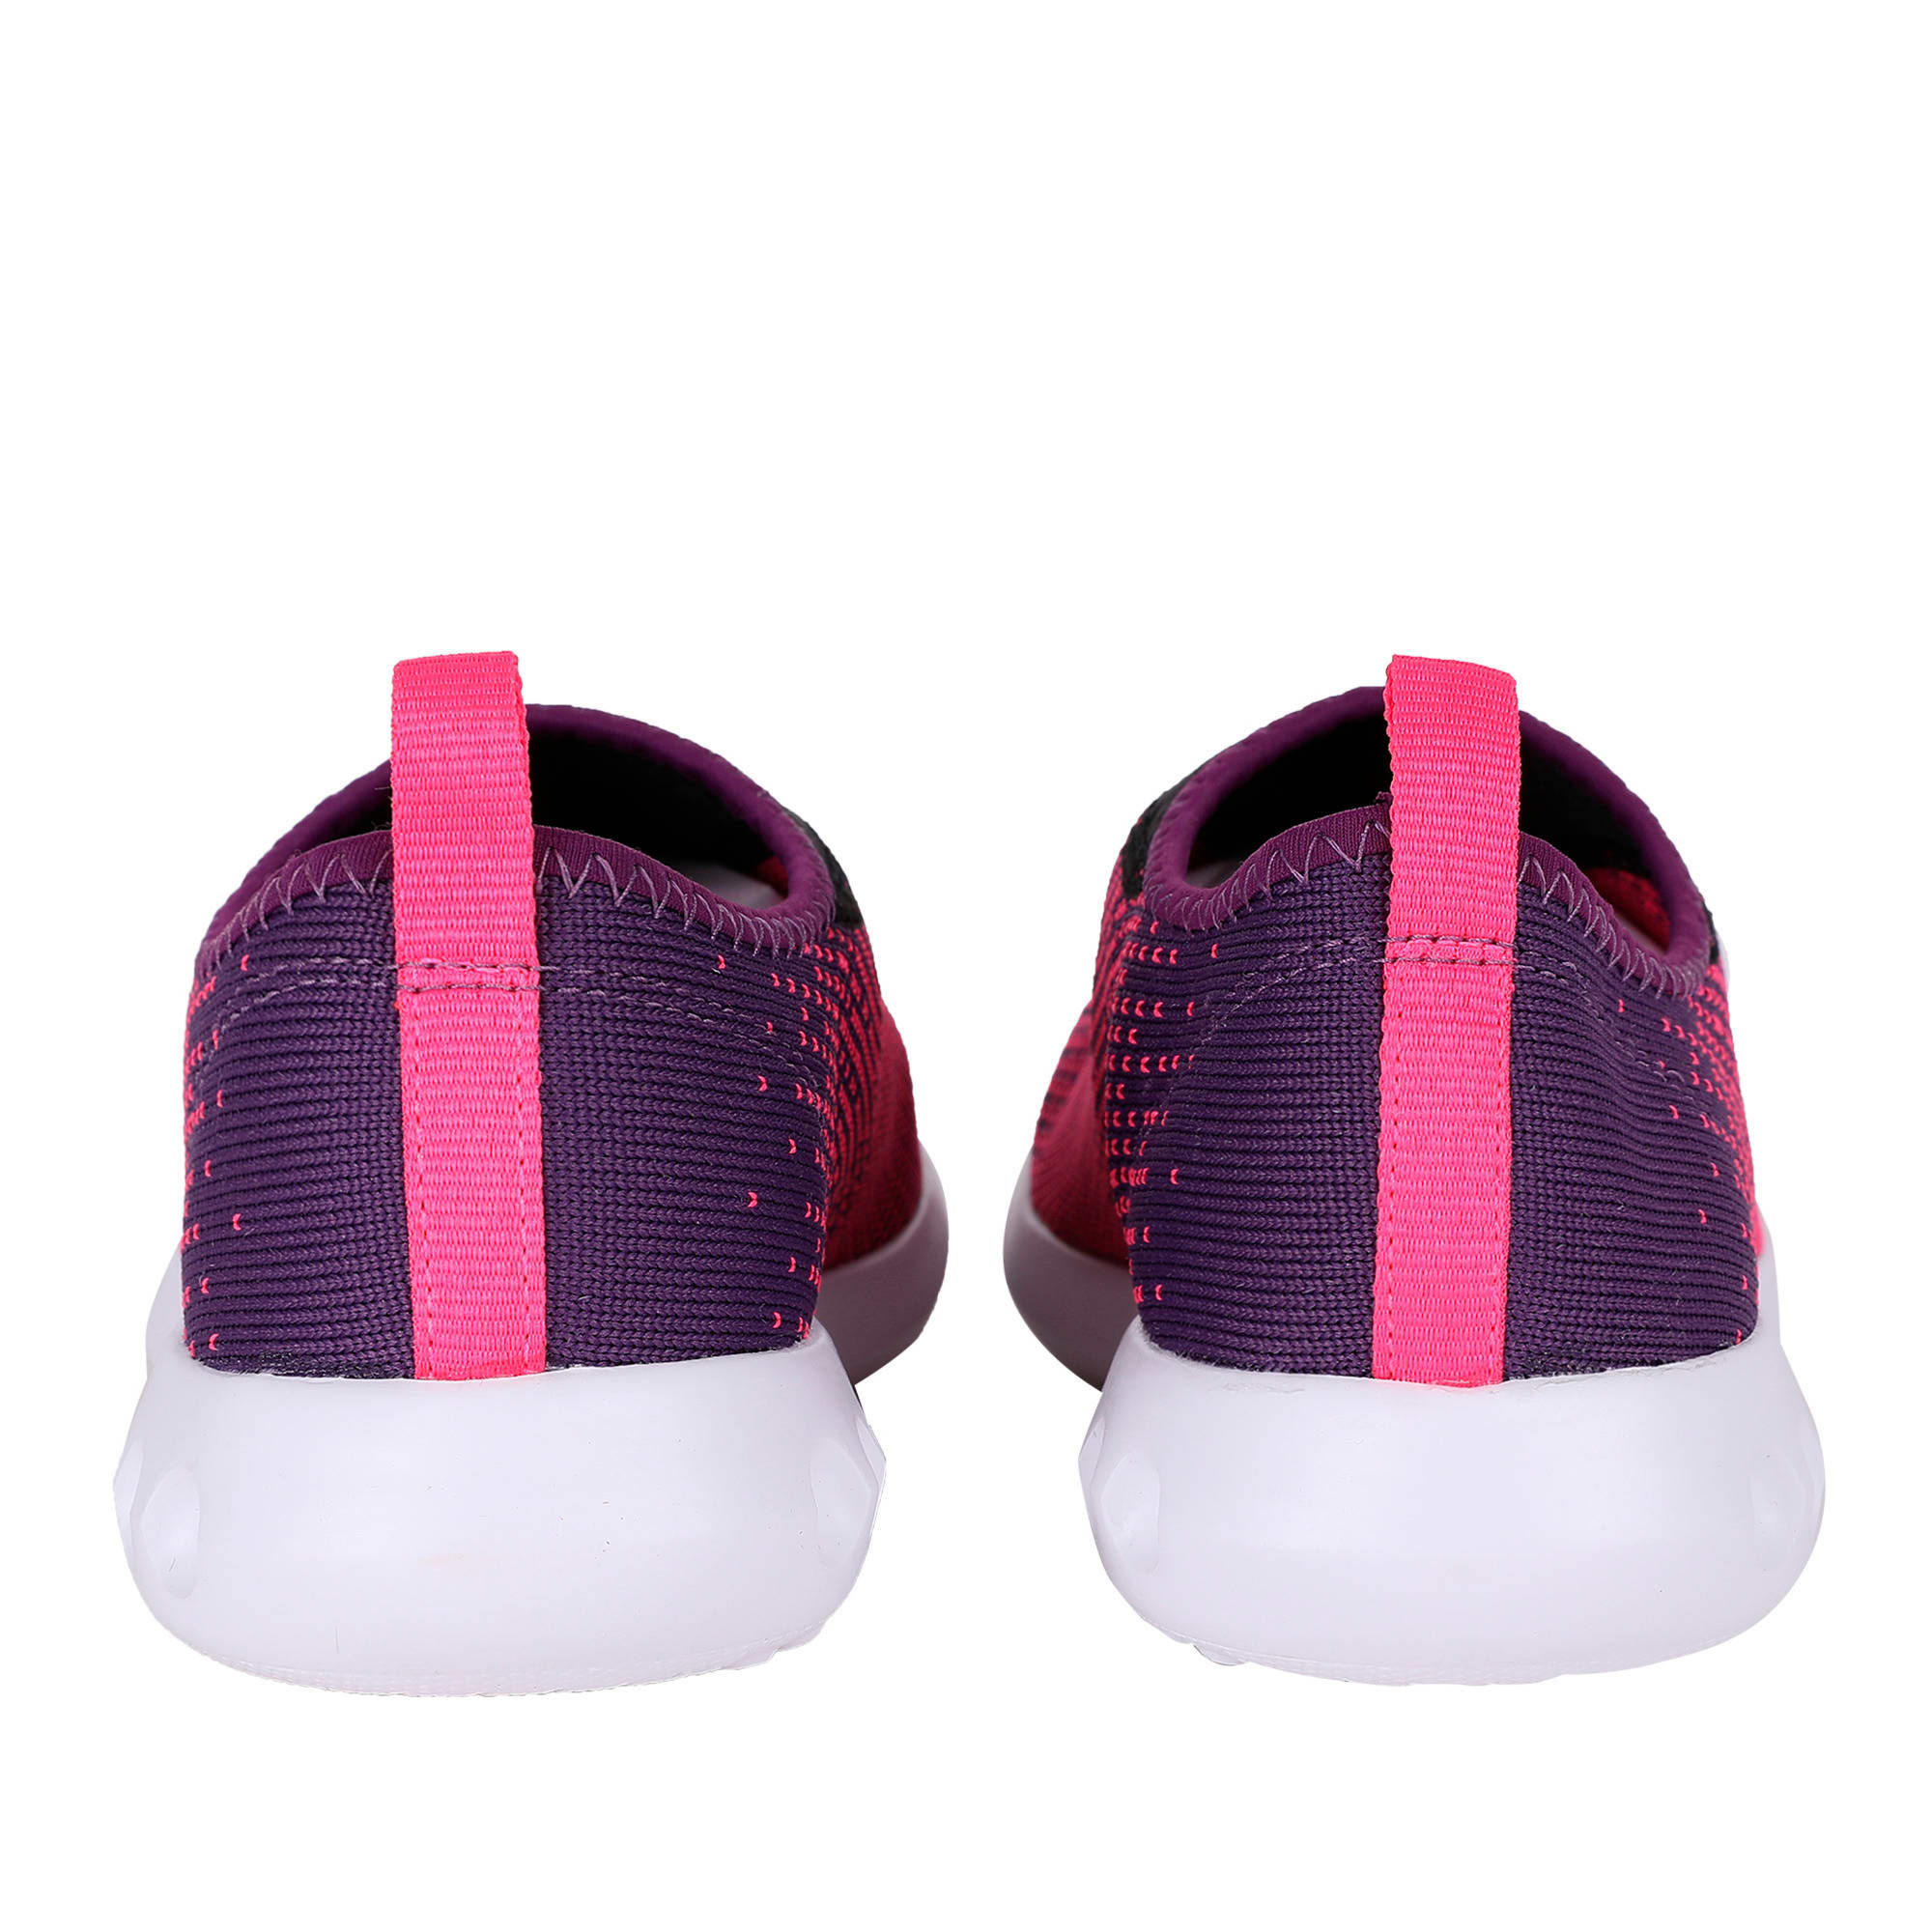 Thumbnail 6 of Carson 2 Slip-On Wn s IDP, Majesty-KO PINK-Puma White, medium-IND